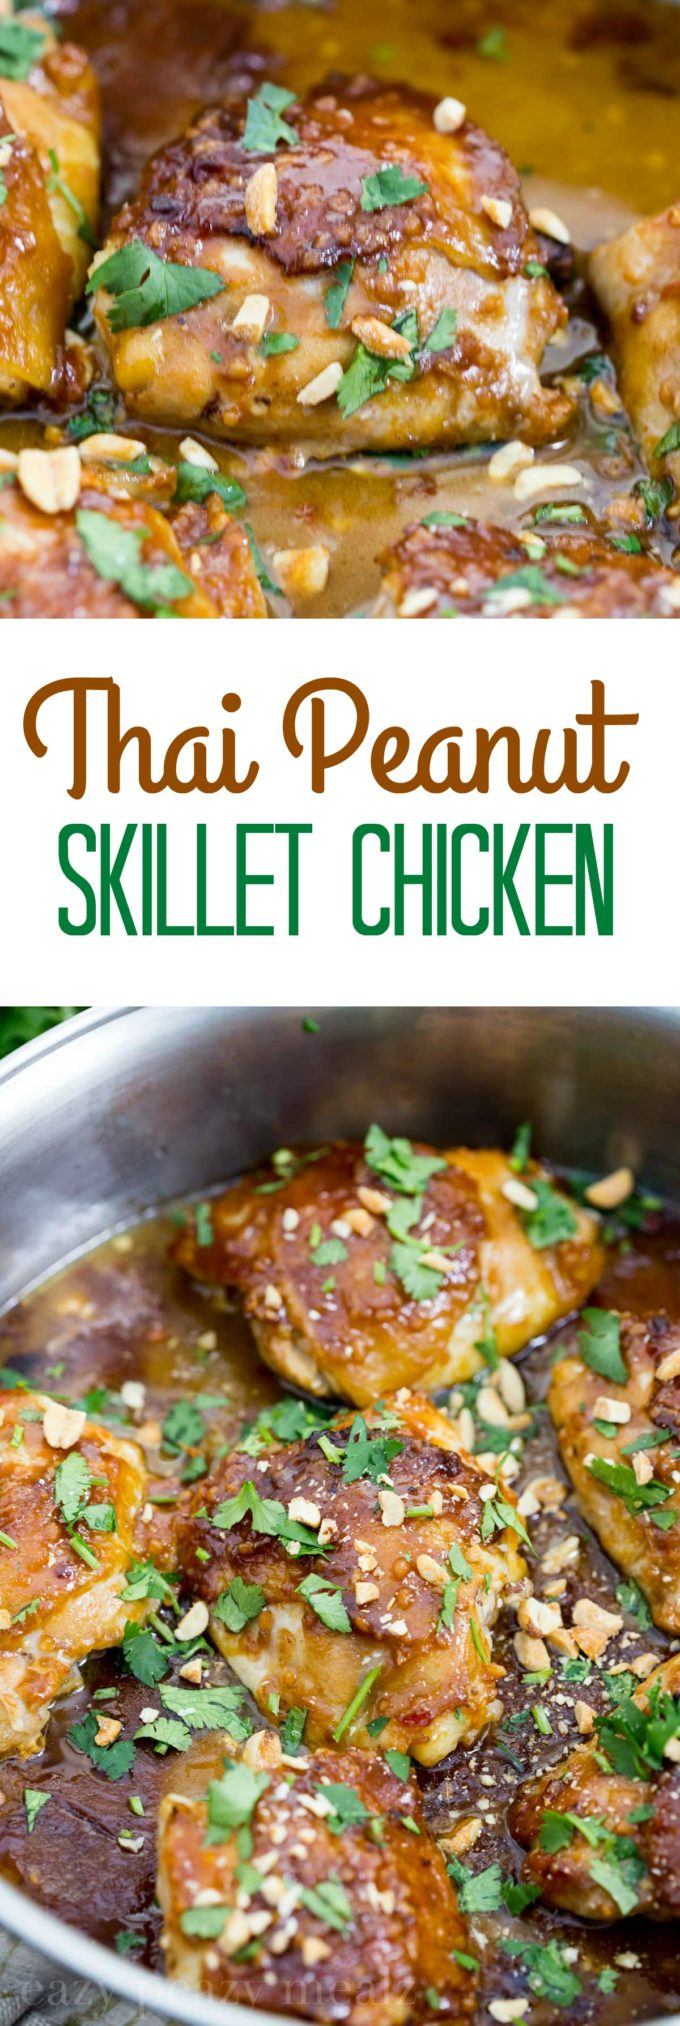 Thai Peanut skillet chicken, an easy one pot chicken that tastes great and bakes up to perfection. Mmmm